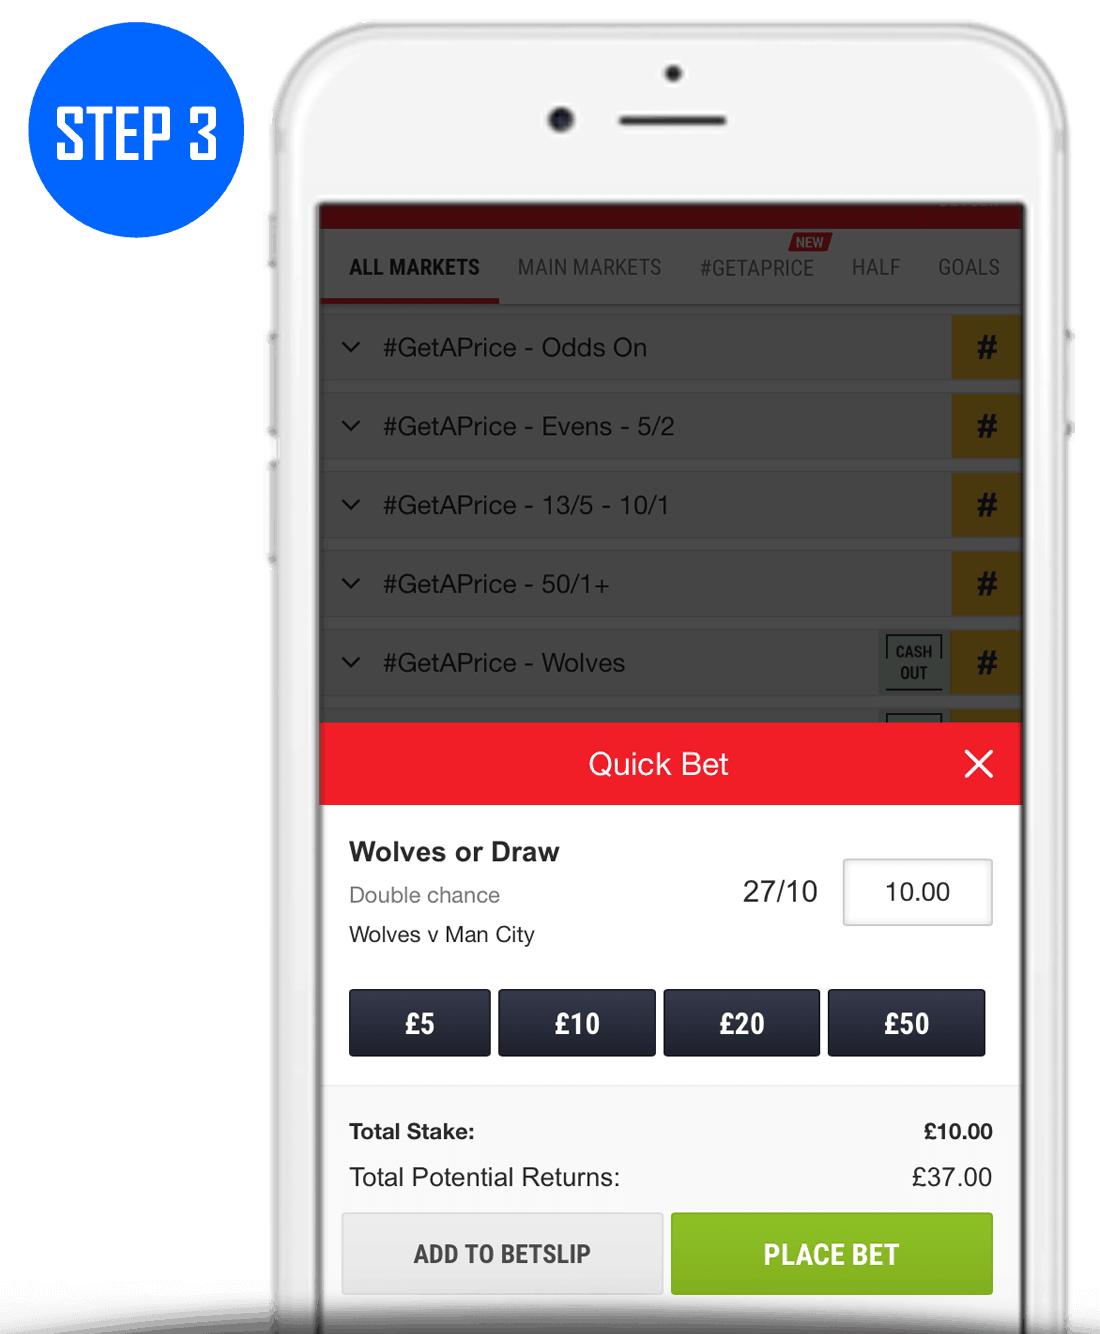 How To Place Double Chance Bet Step 3